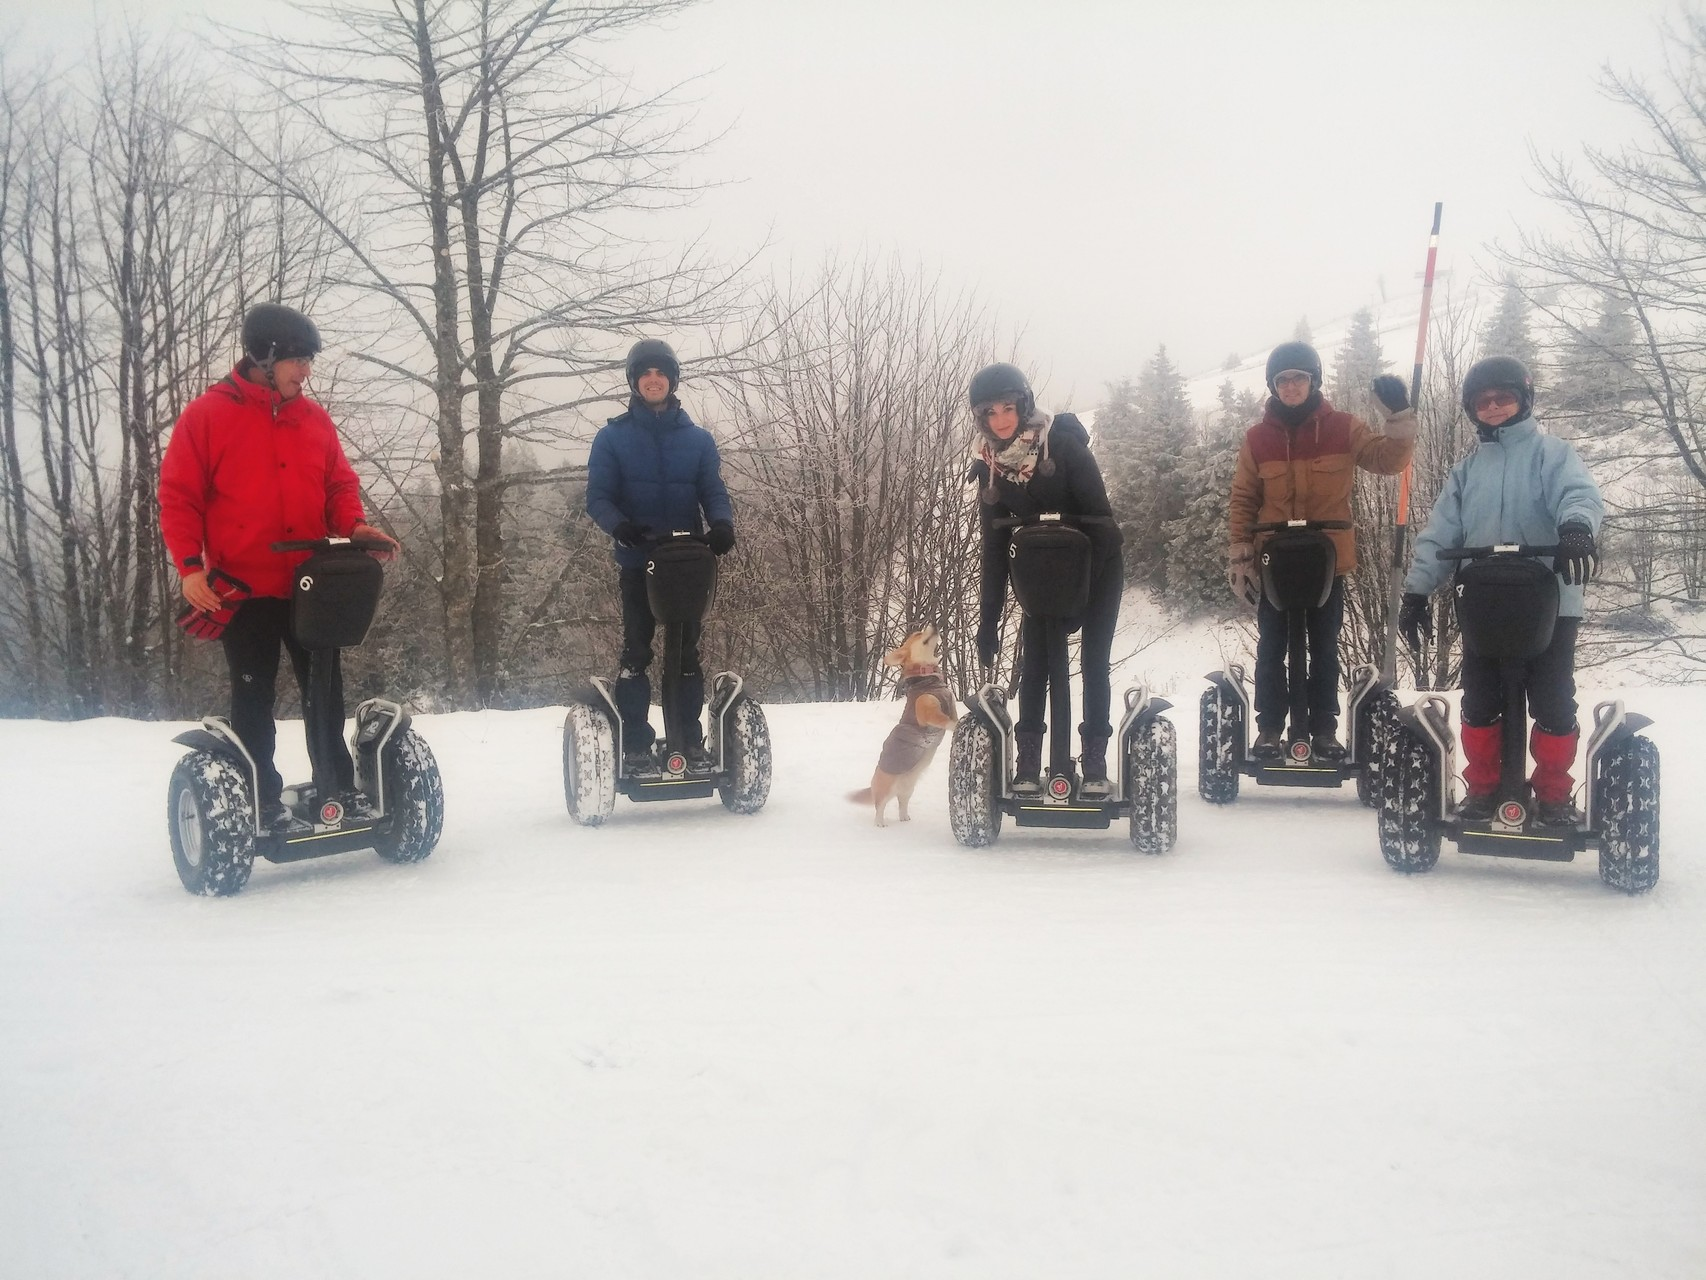 FUN MOVING GYROPODE SEGWAY EN ALSACE - Le Markstein, neige, Vosges